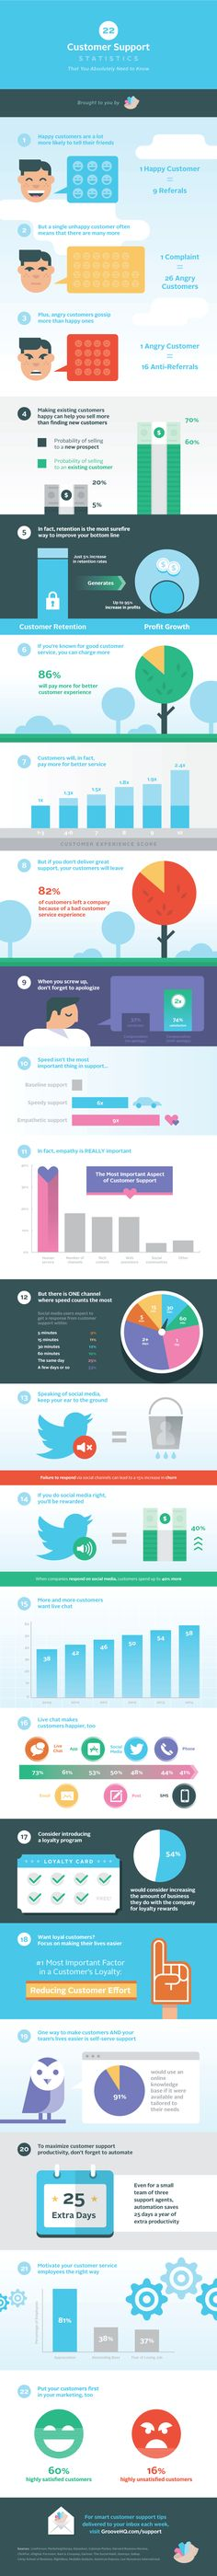 www.groovehq.com support statistics-infographic-full